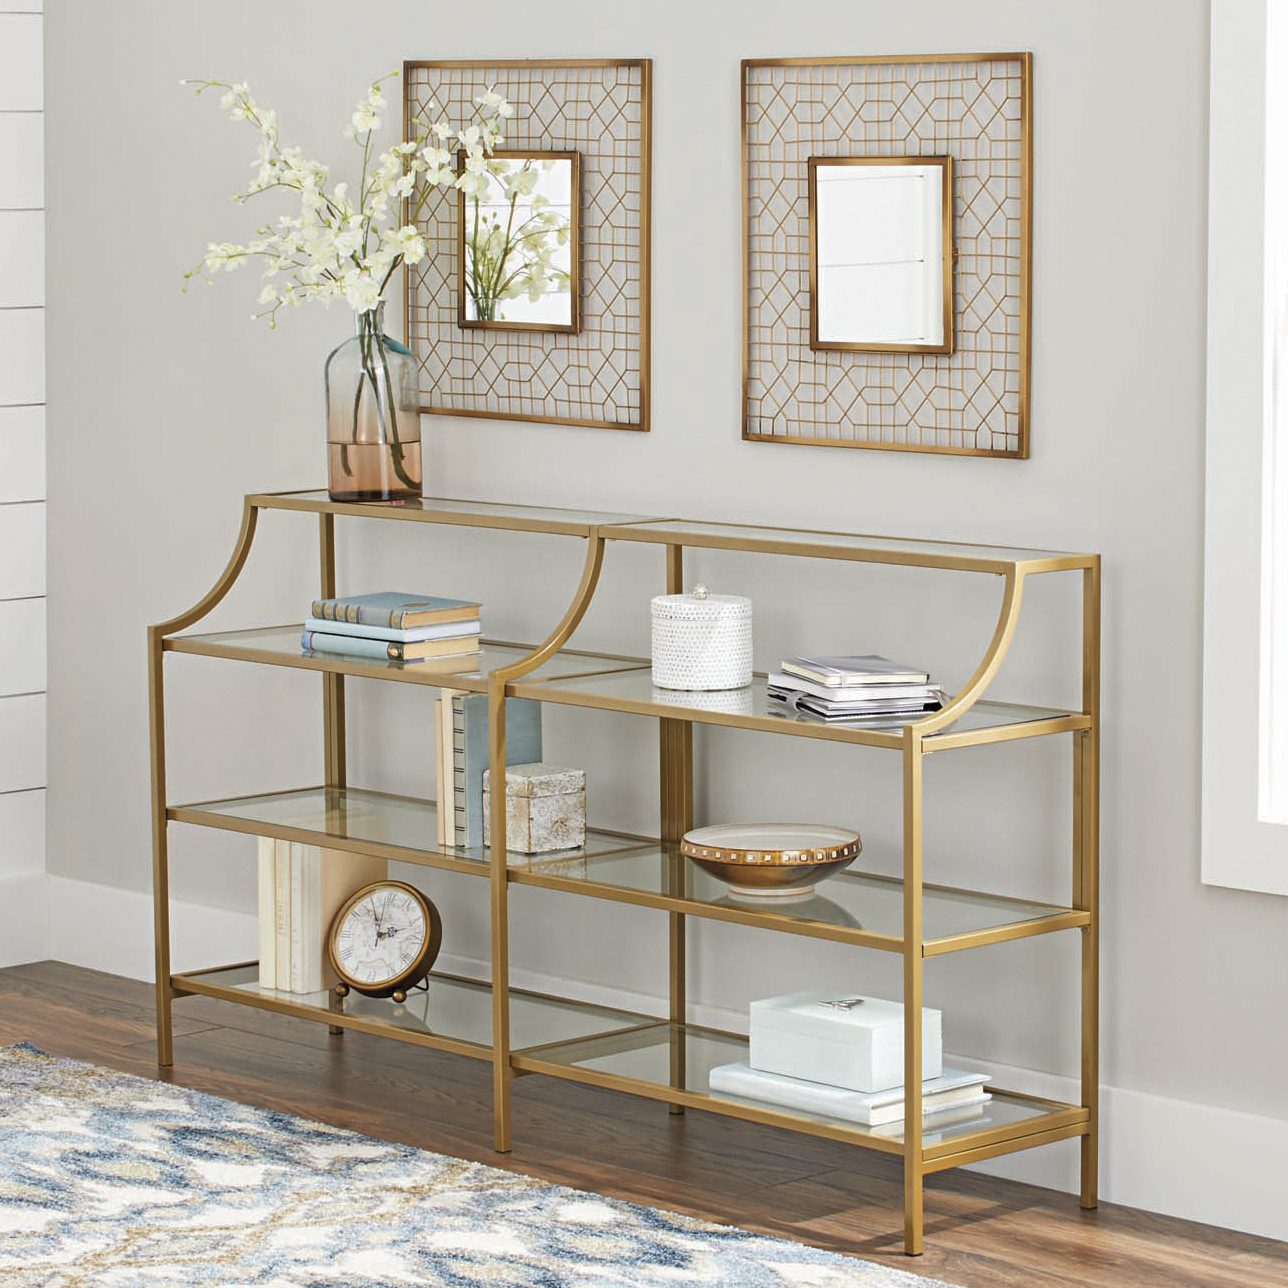 Better Homes Gardens Nola Console Table, Gold Finish 689413782828 | Ebay Within Ventana Display Console Tables (View 1 of 20)